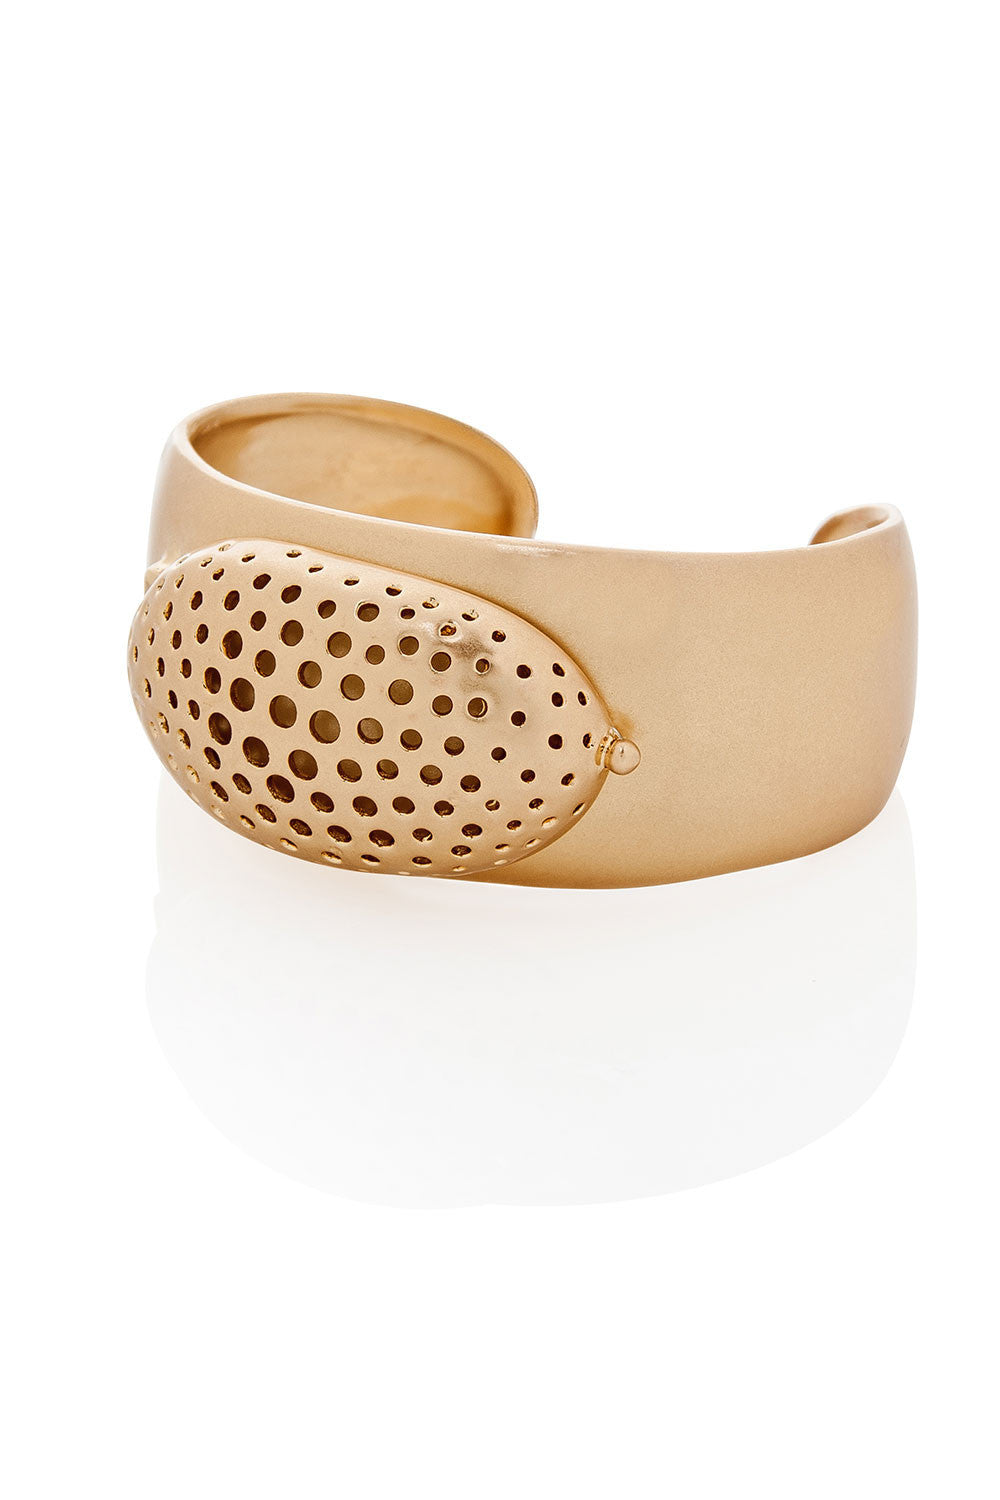 Tom Binns Brushed Gold Cuff